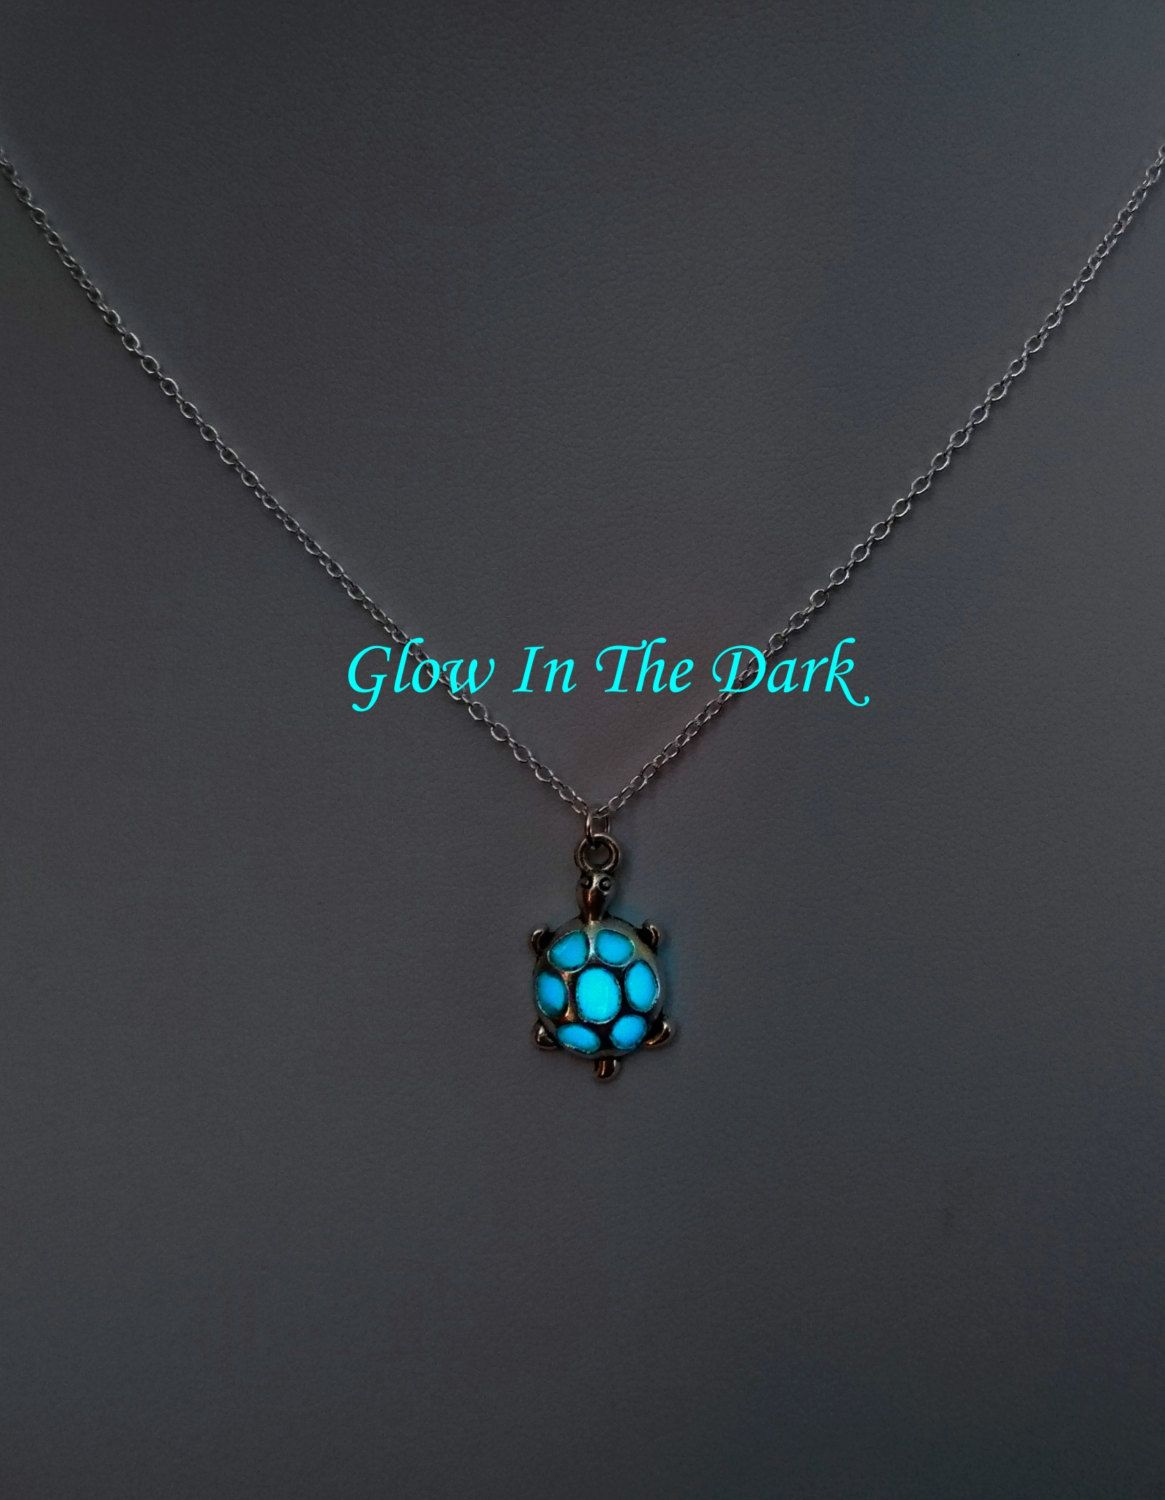 doll glow cabochon product in the necklace glowing pendant steel halloween jewelry stainless dark glass diamond wholesale dome chain